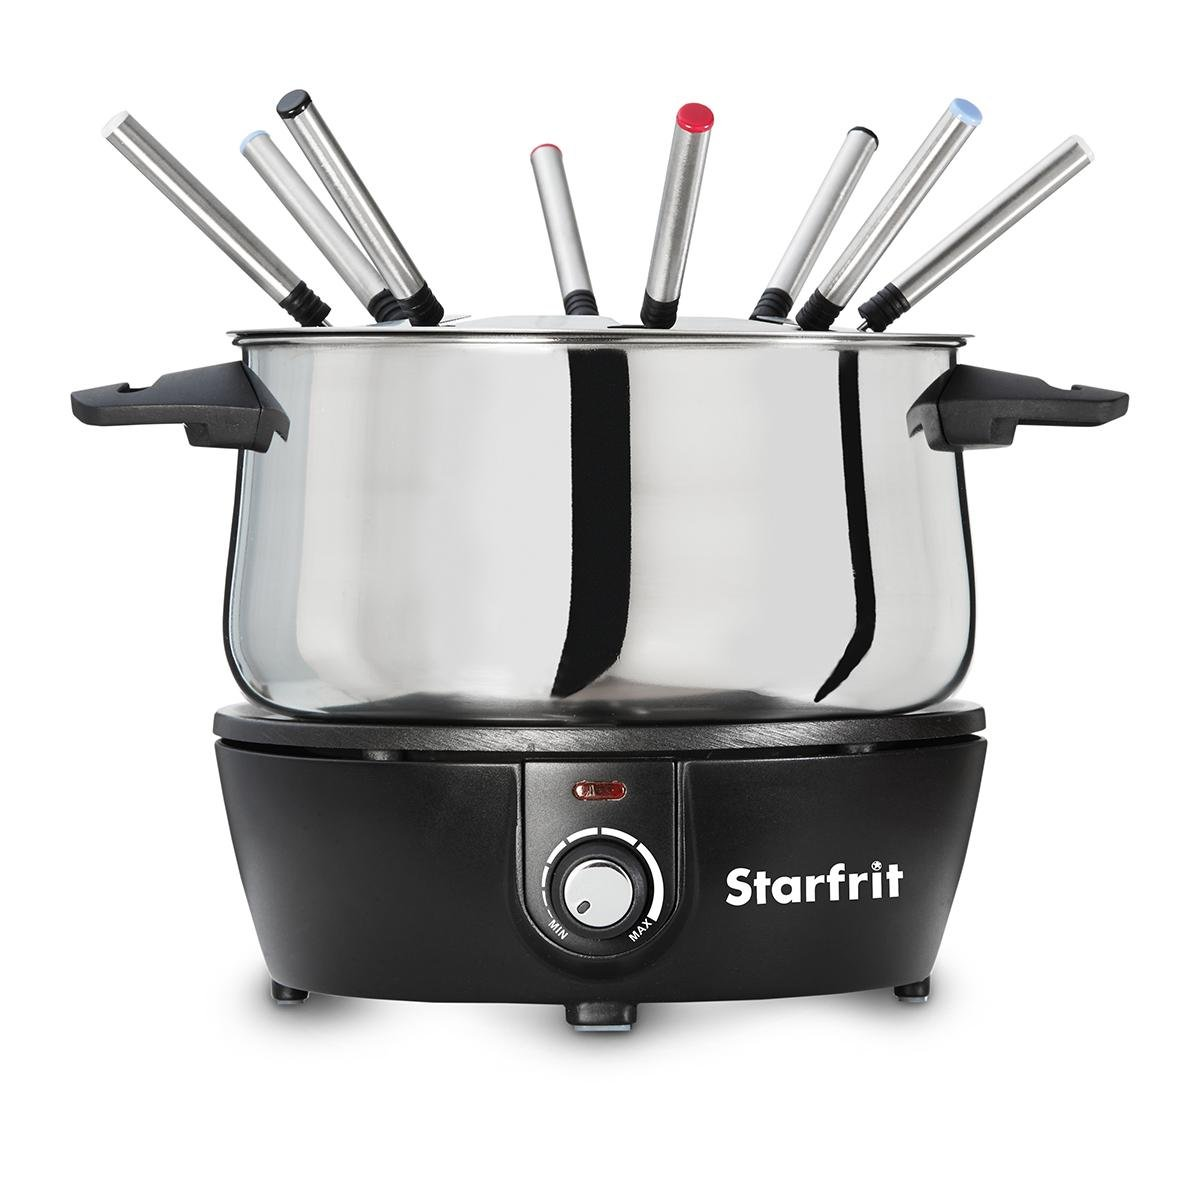 Starfrit 024700-004-0000 Electric Fondue Set, 9.8 9.7&quotx 7.9'', Black by Starfrit